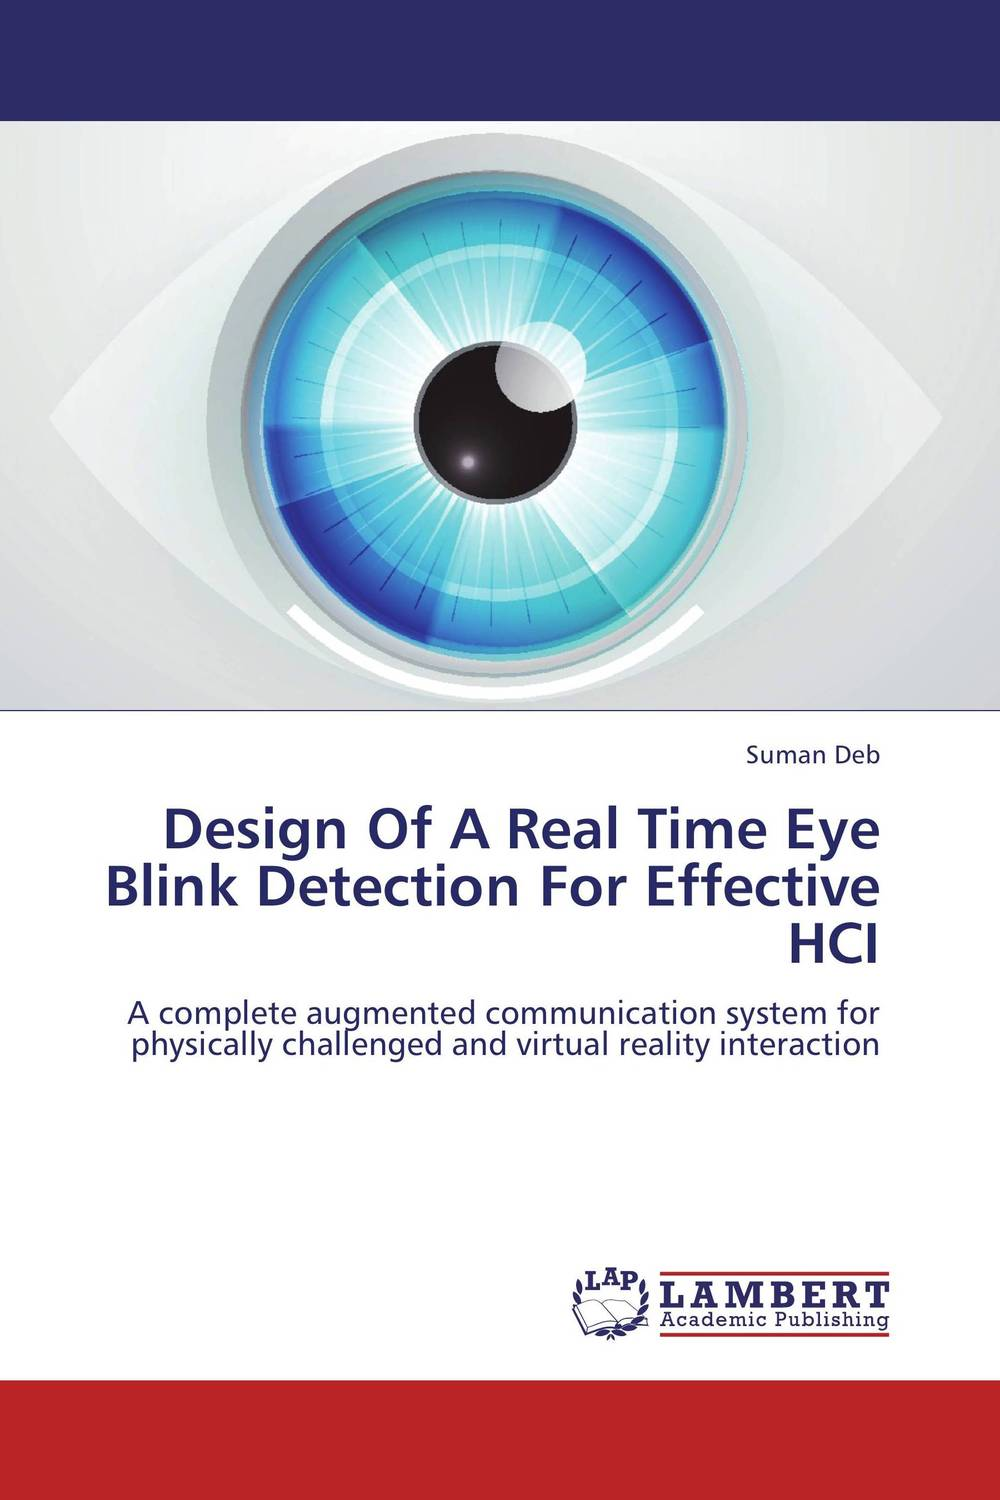 Design Of A Real Time Eye Blink Detection For Effective HCI видеоигра софтклаб the dark eye chains of satinav